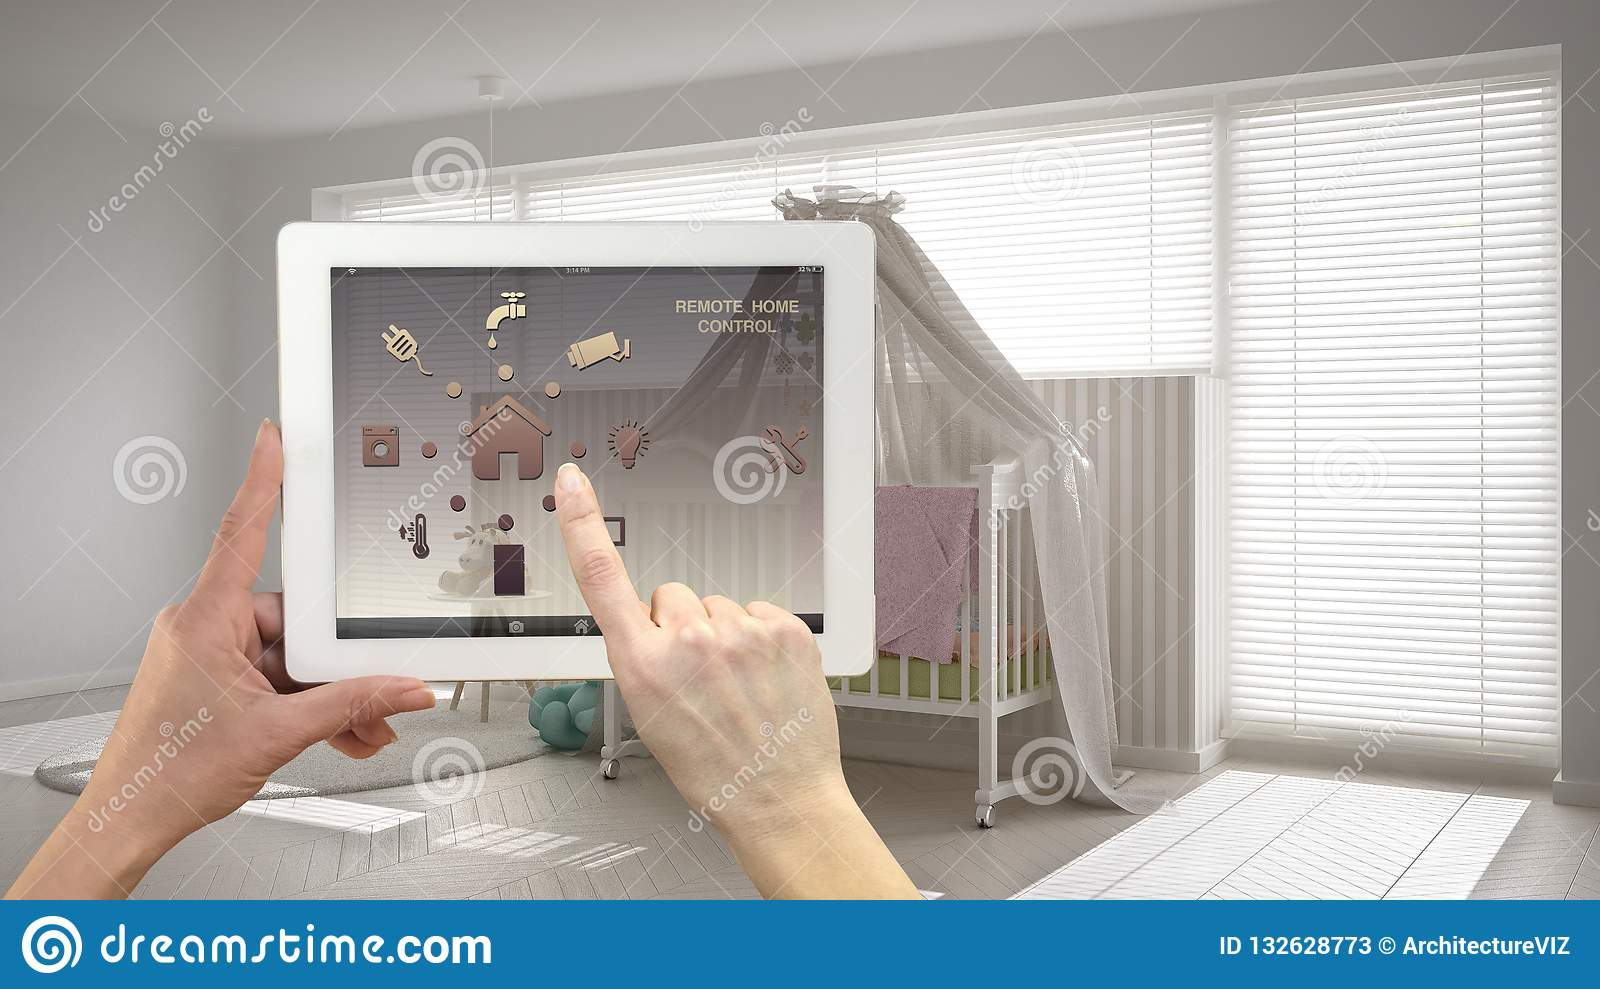 Smart Remote Home Control System On A Digital Tablet  Device With